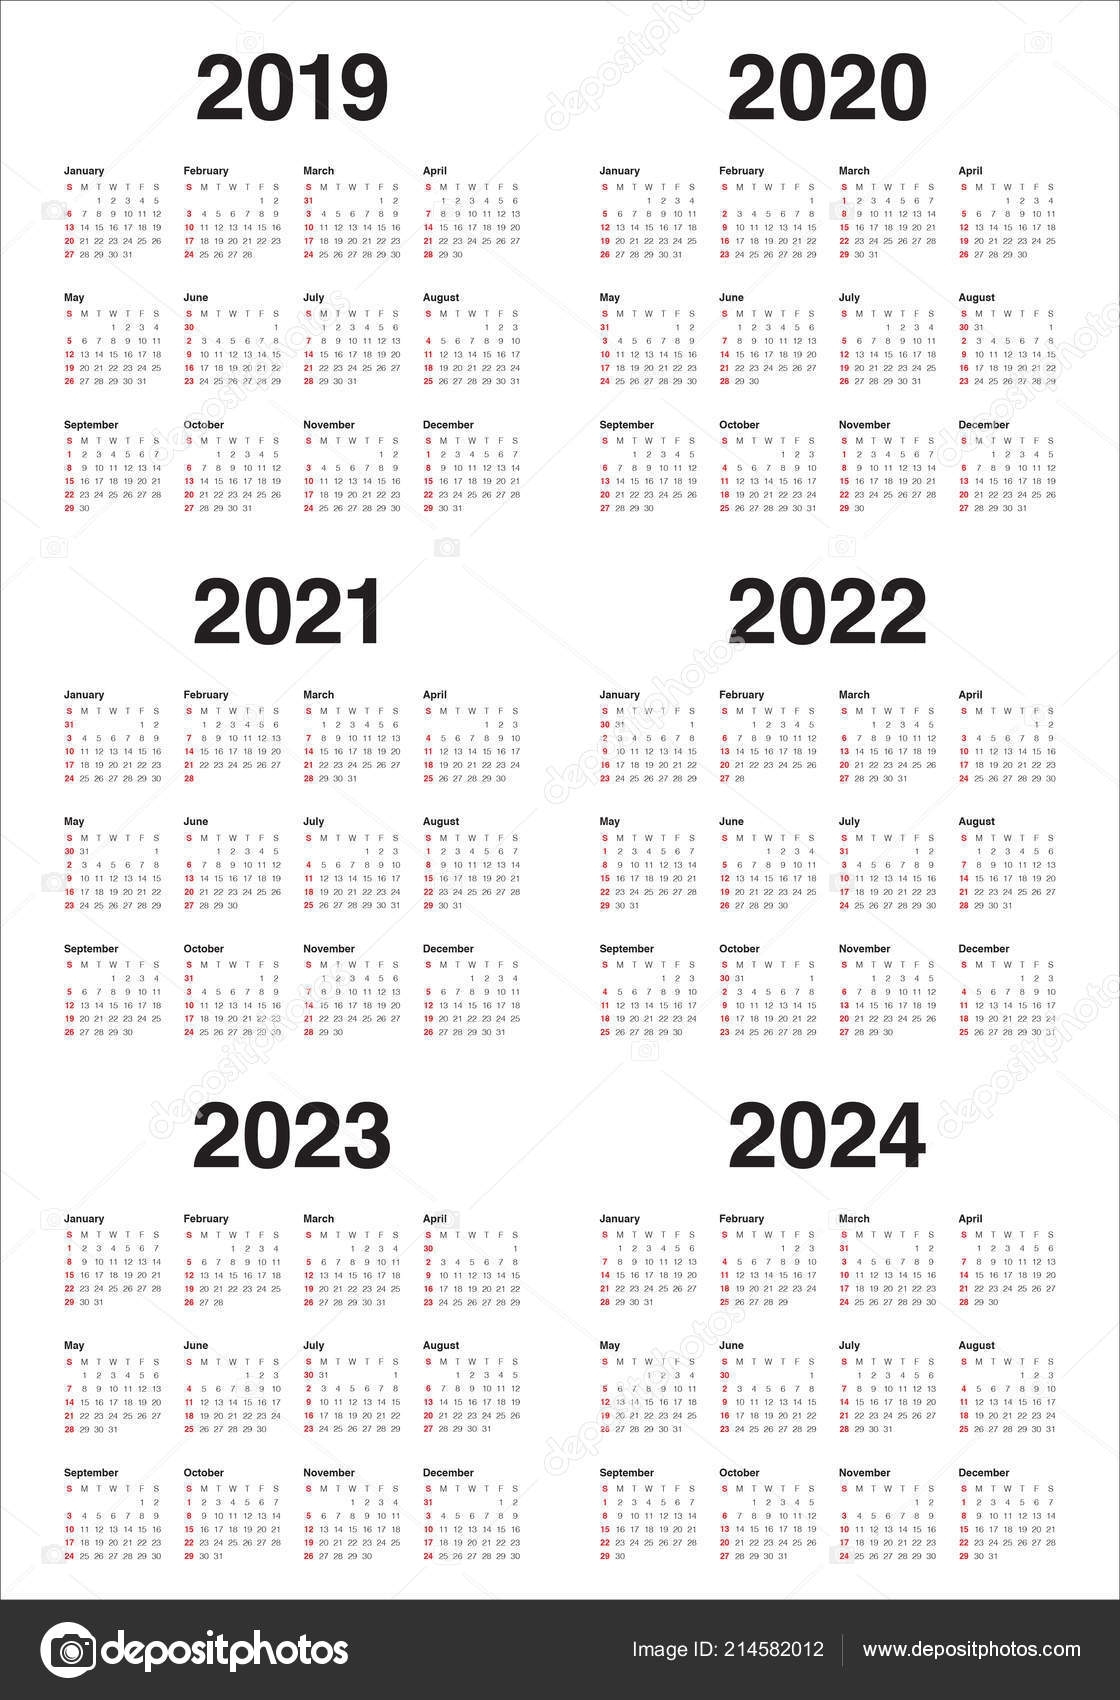 Year 2019 2020 2021 2022 2023 2024 Calendar Vector Design Template, Simple  And Clean Design 214582012 inside Year Calendar 2019 2020 2021 2022 2023 2024